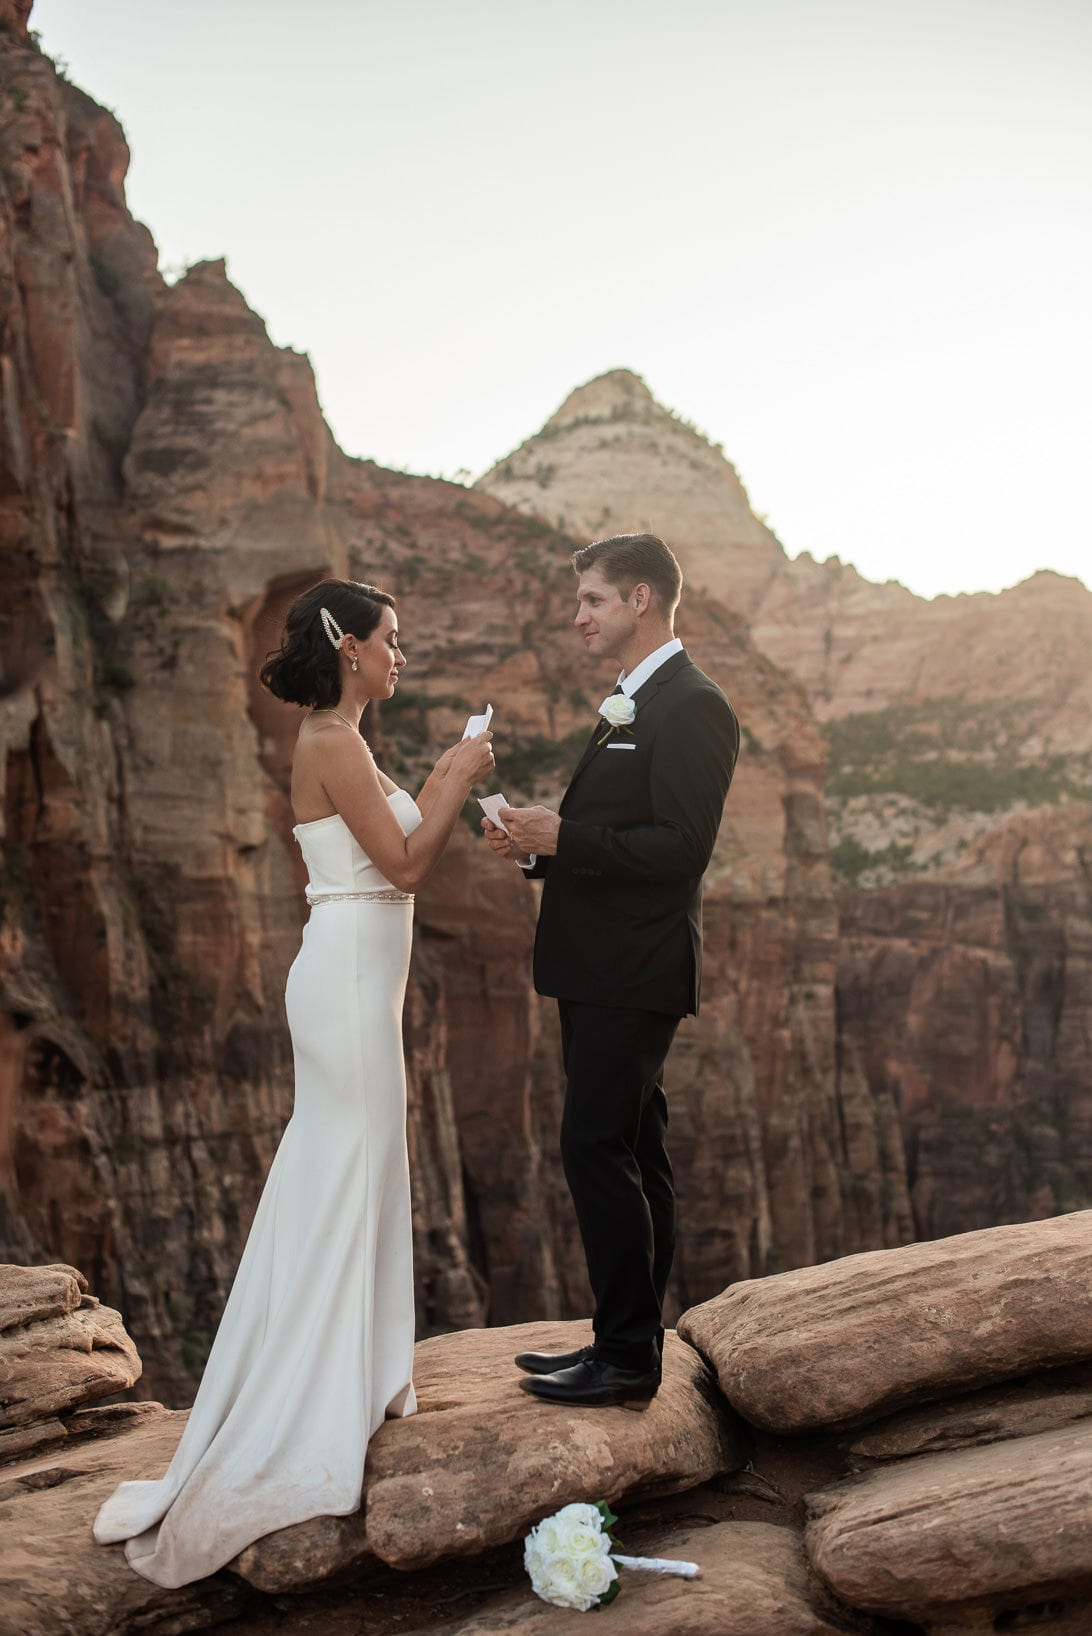 Exchanging Vows Zion National Park